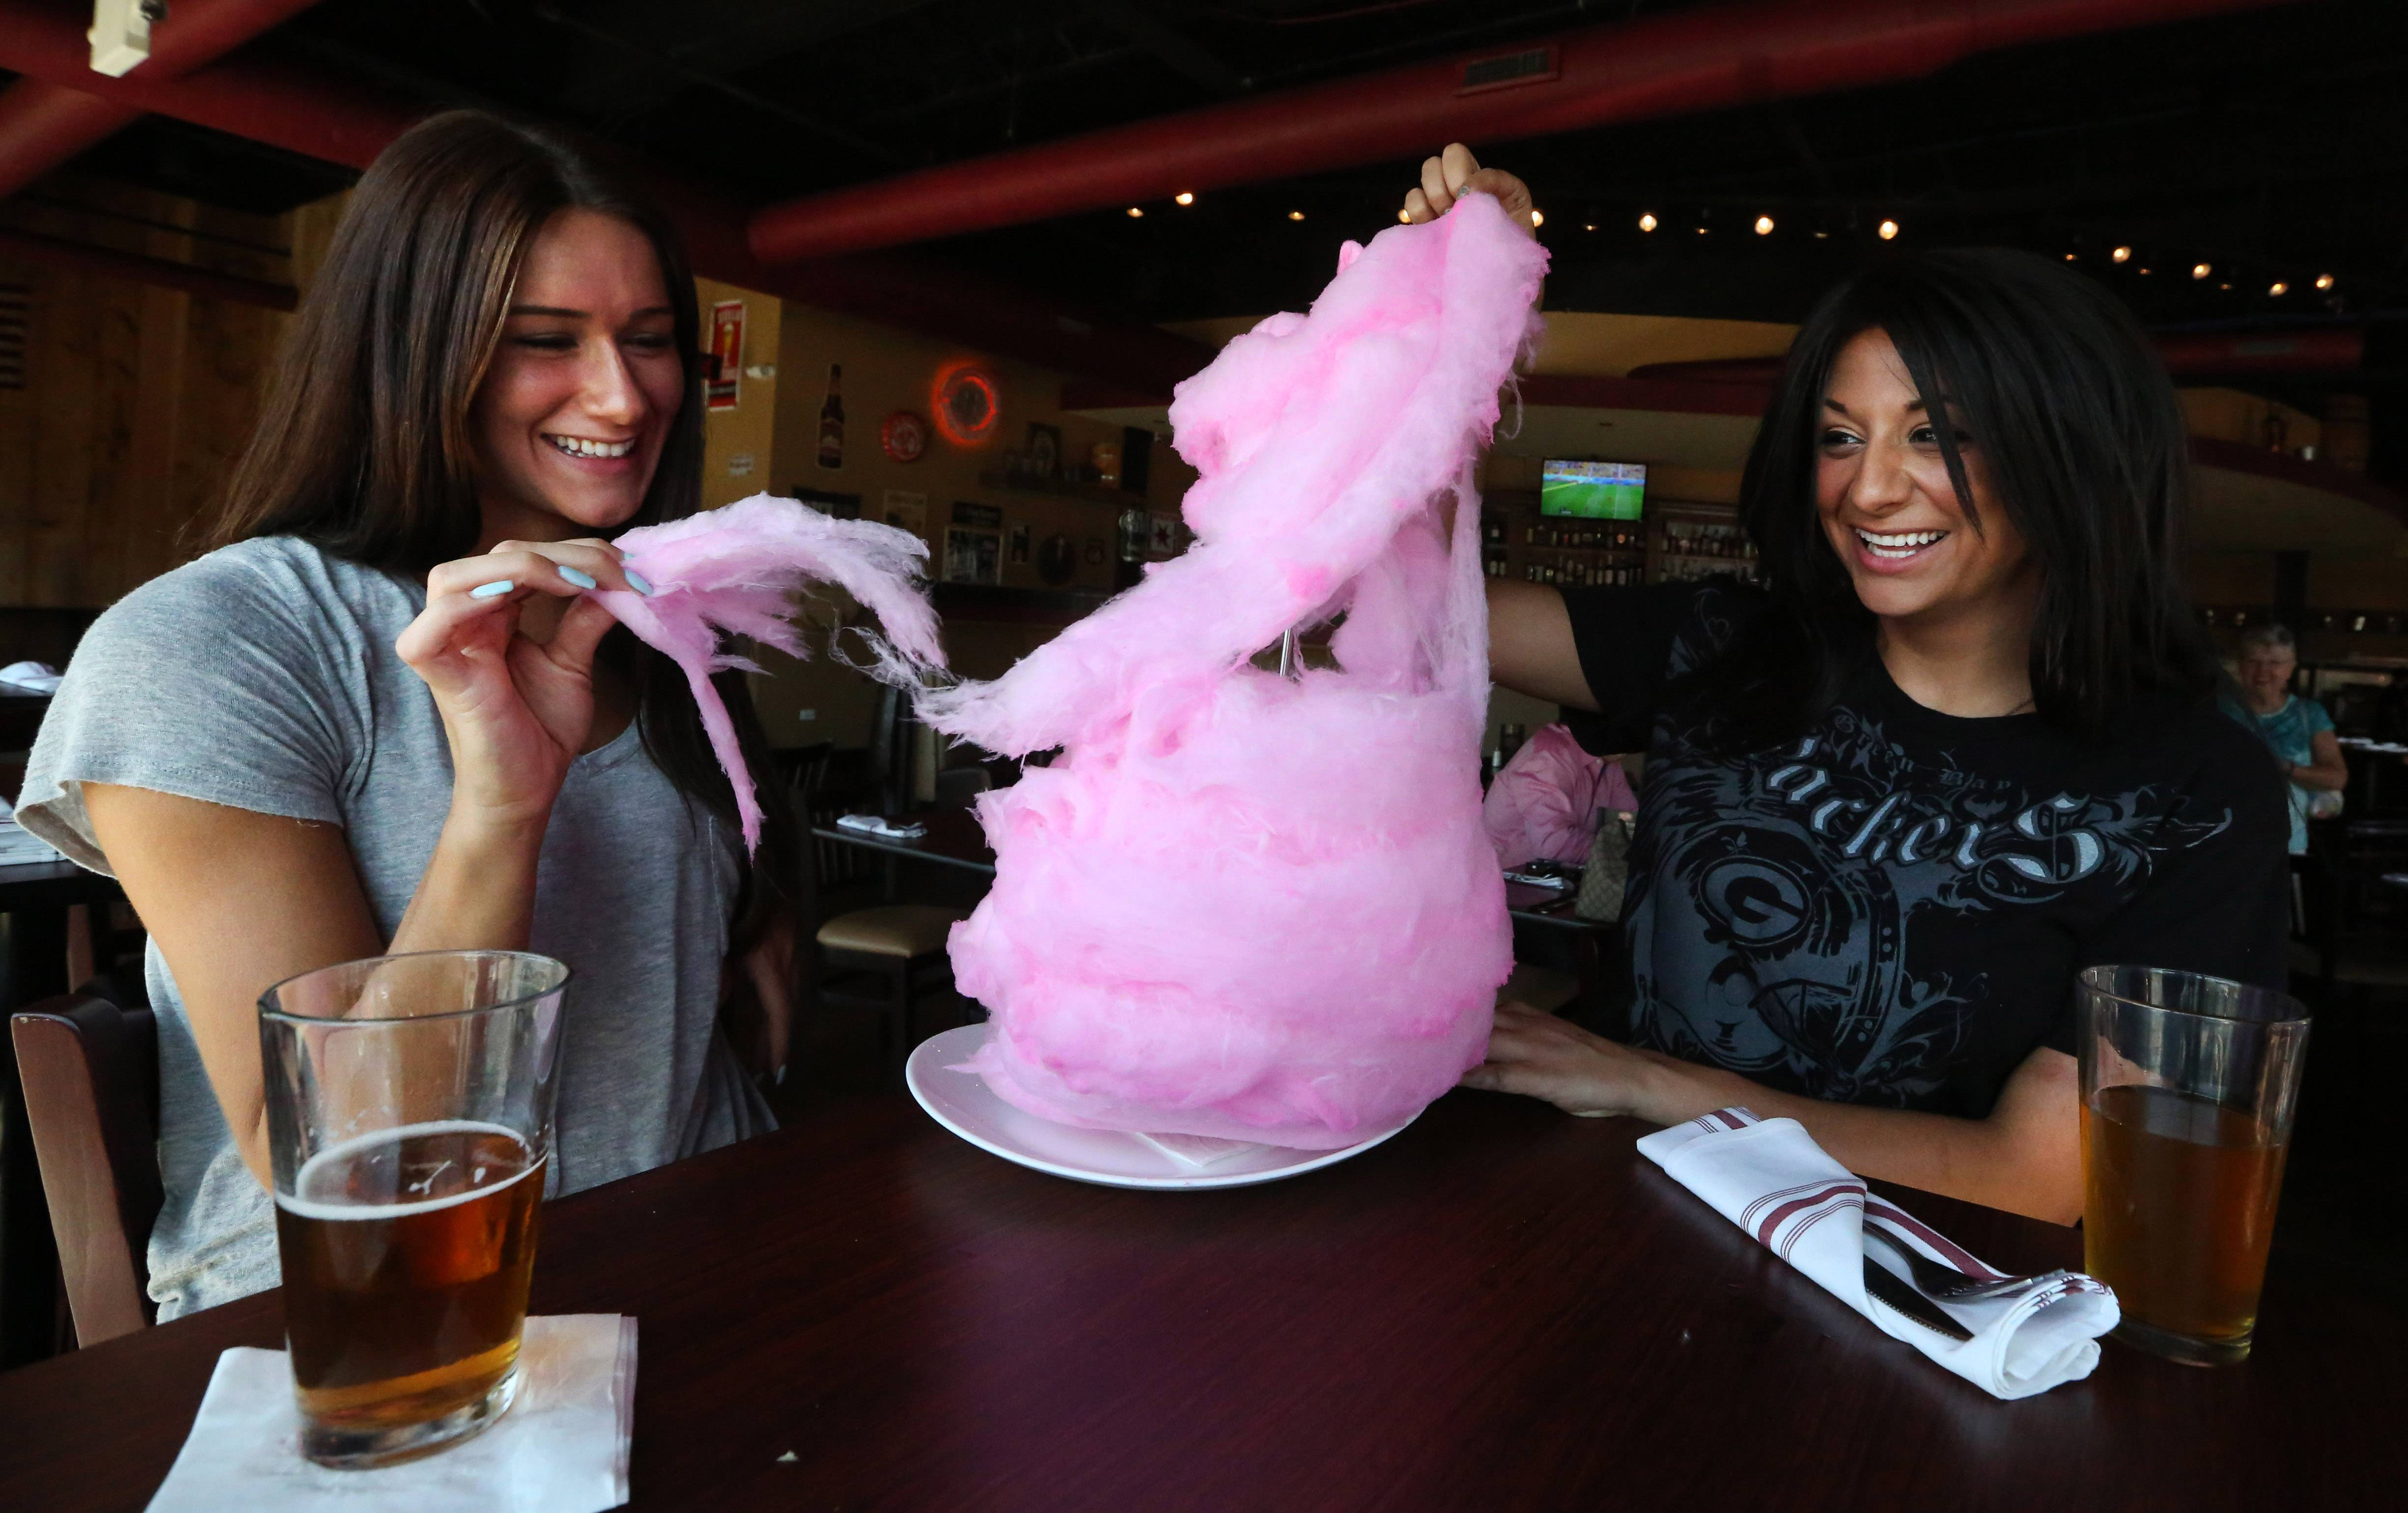 Christina Moretti, left, of Rolling Meadows and Mioara Alfano of Wheeling try cotton candy at Spears in Wheeling.